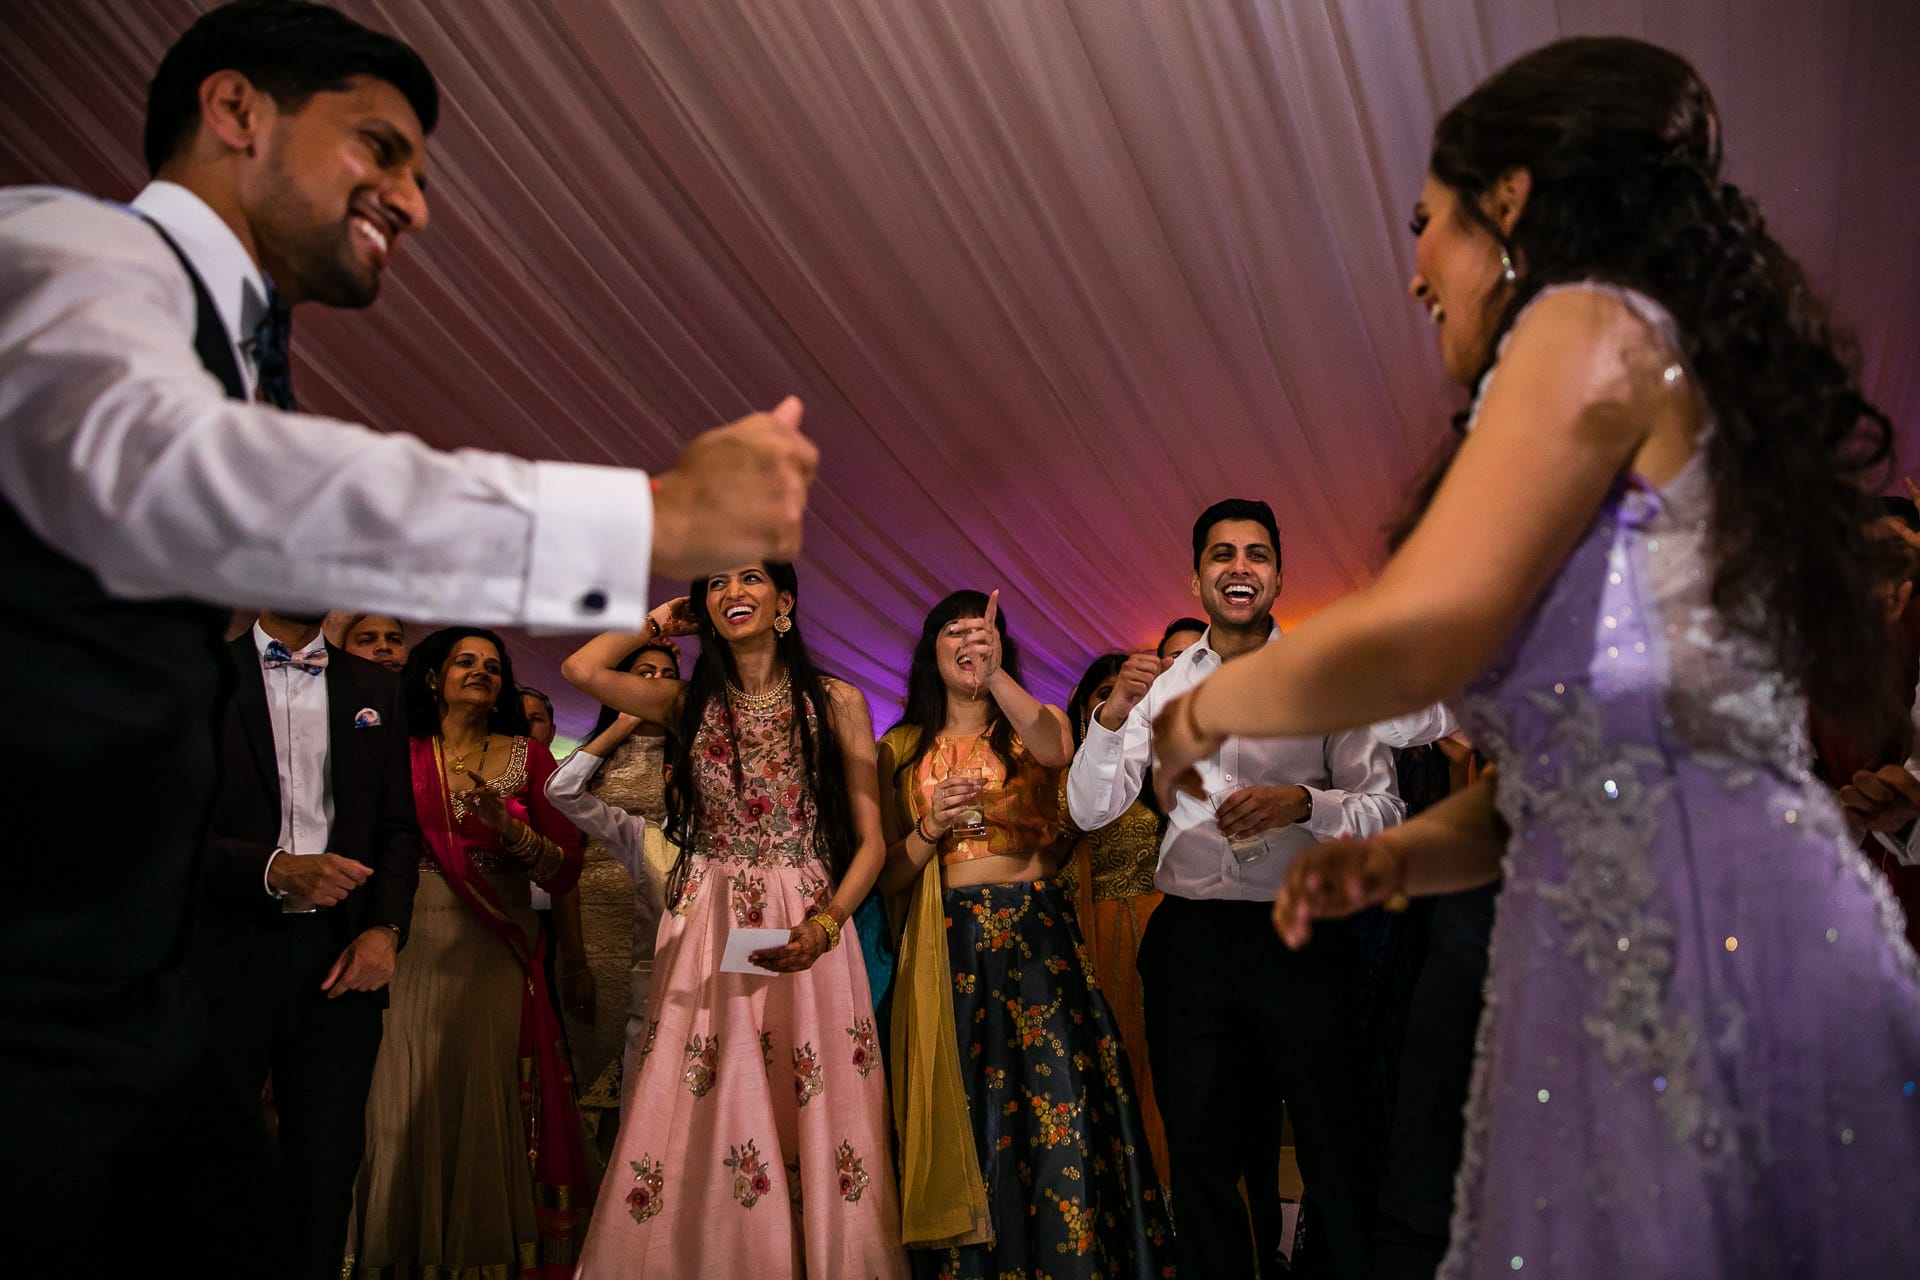 Asian Wedding reception party at Hylands Estate